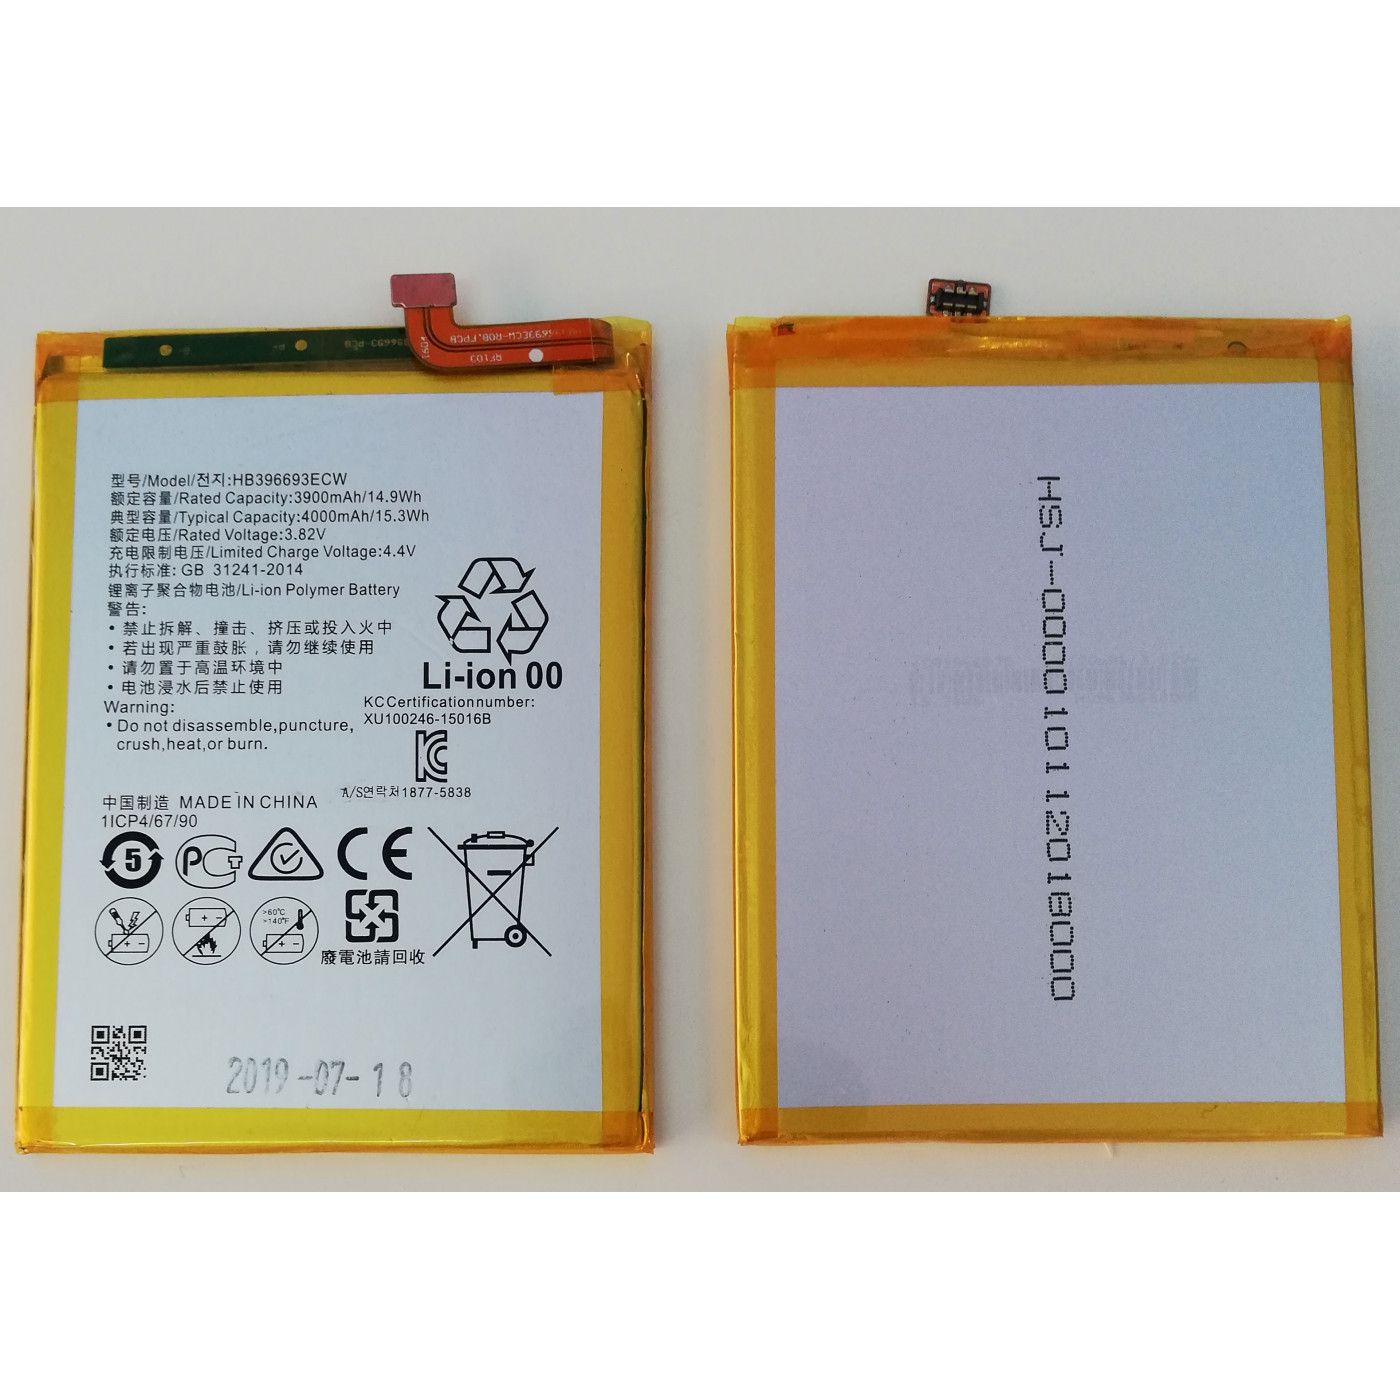 BATTERY For HUAWEI MATE 8 NXT-AL10 HB396693ECW 4000mah